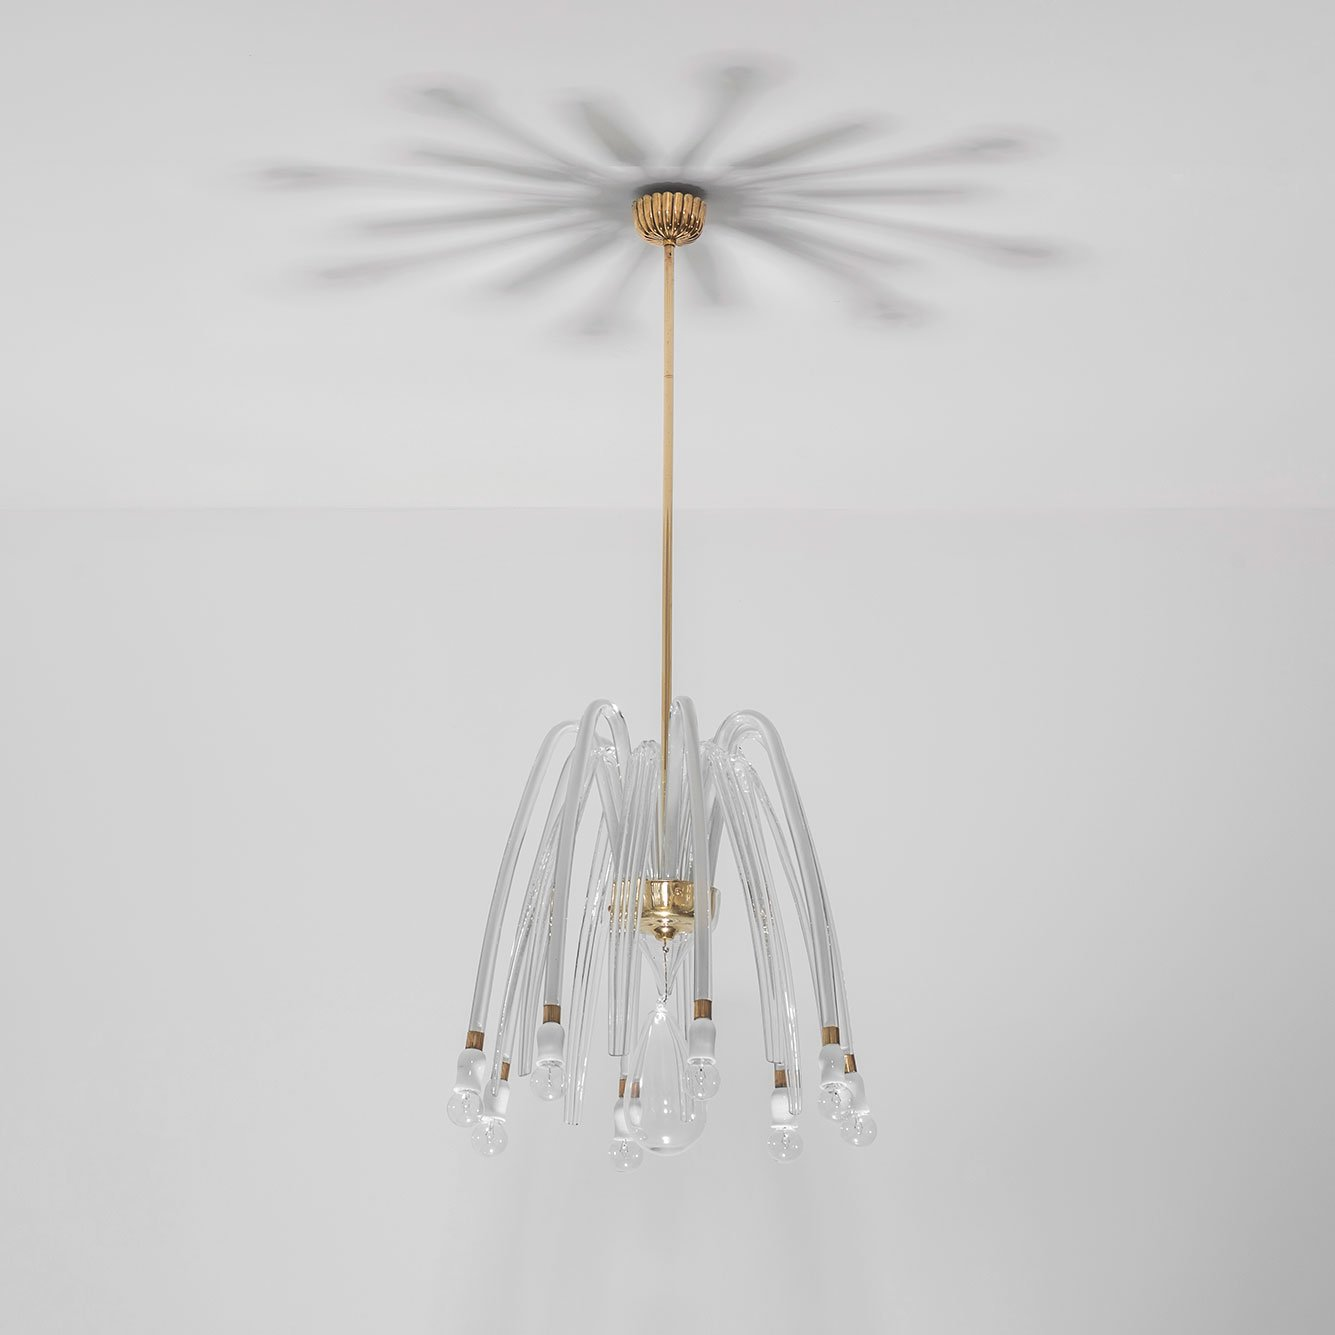 Carlo Scarpa |  Rare eight-armed glass chandelier model 5334 A8